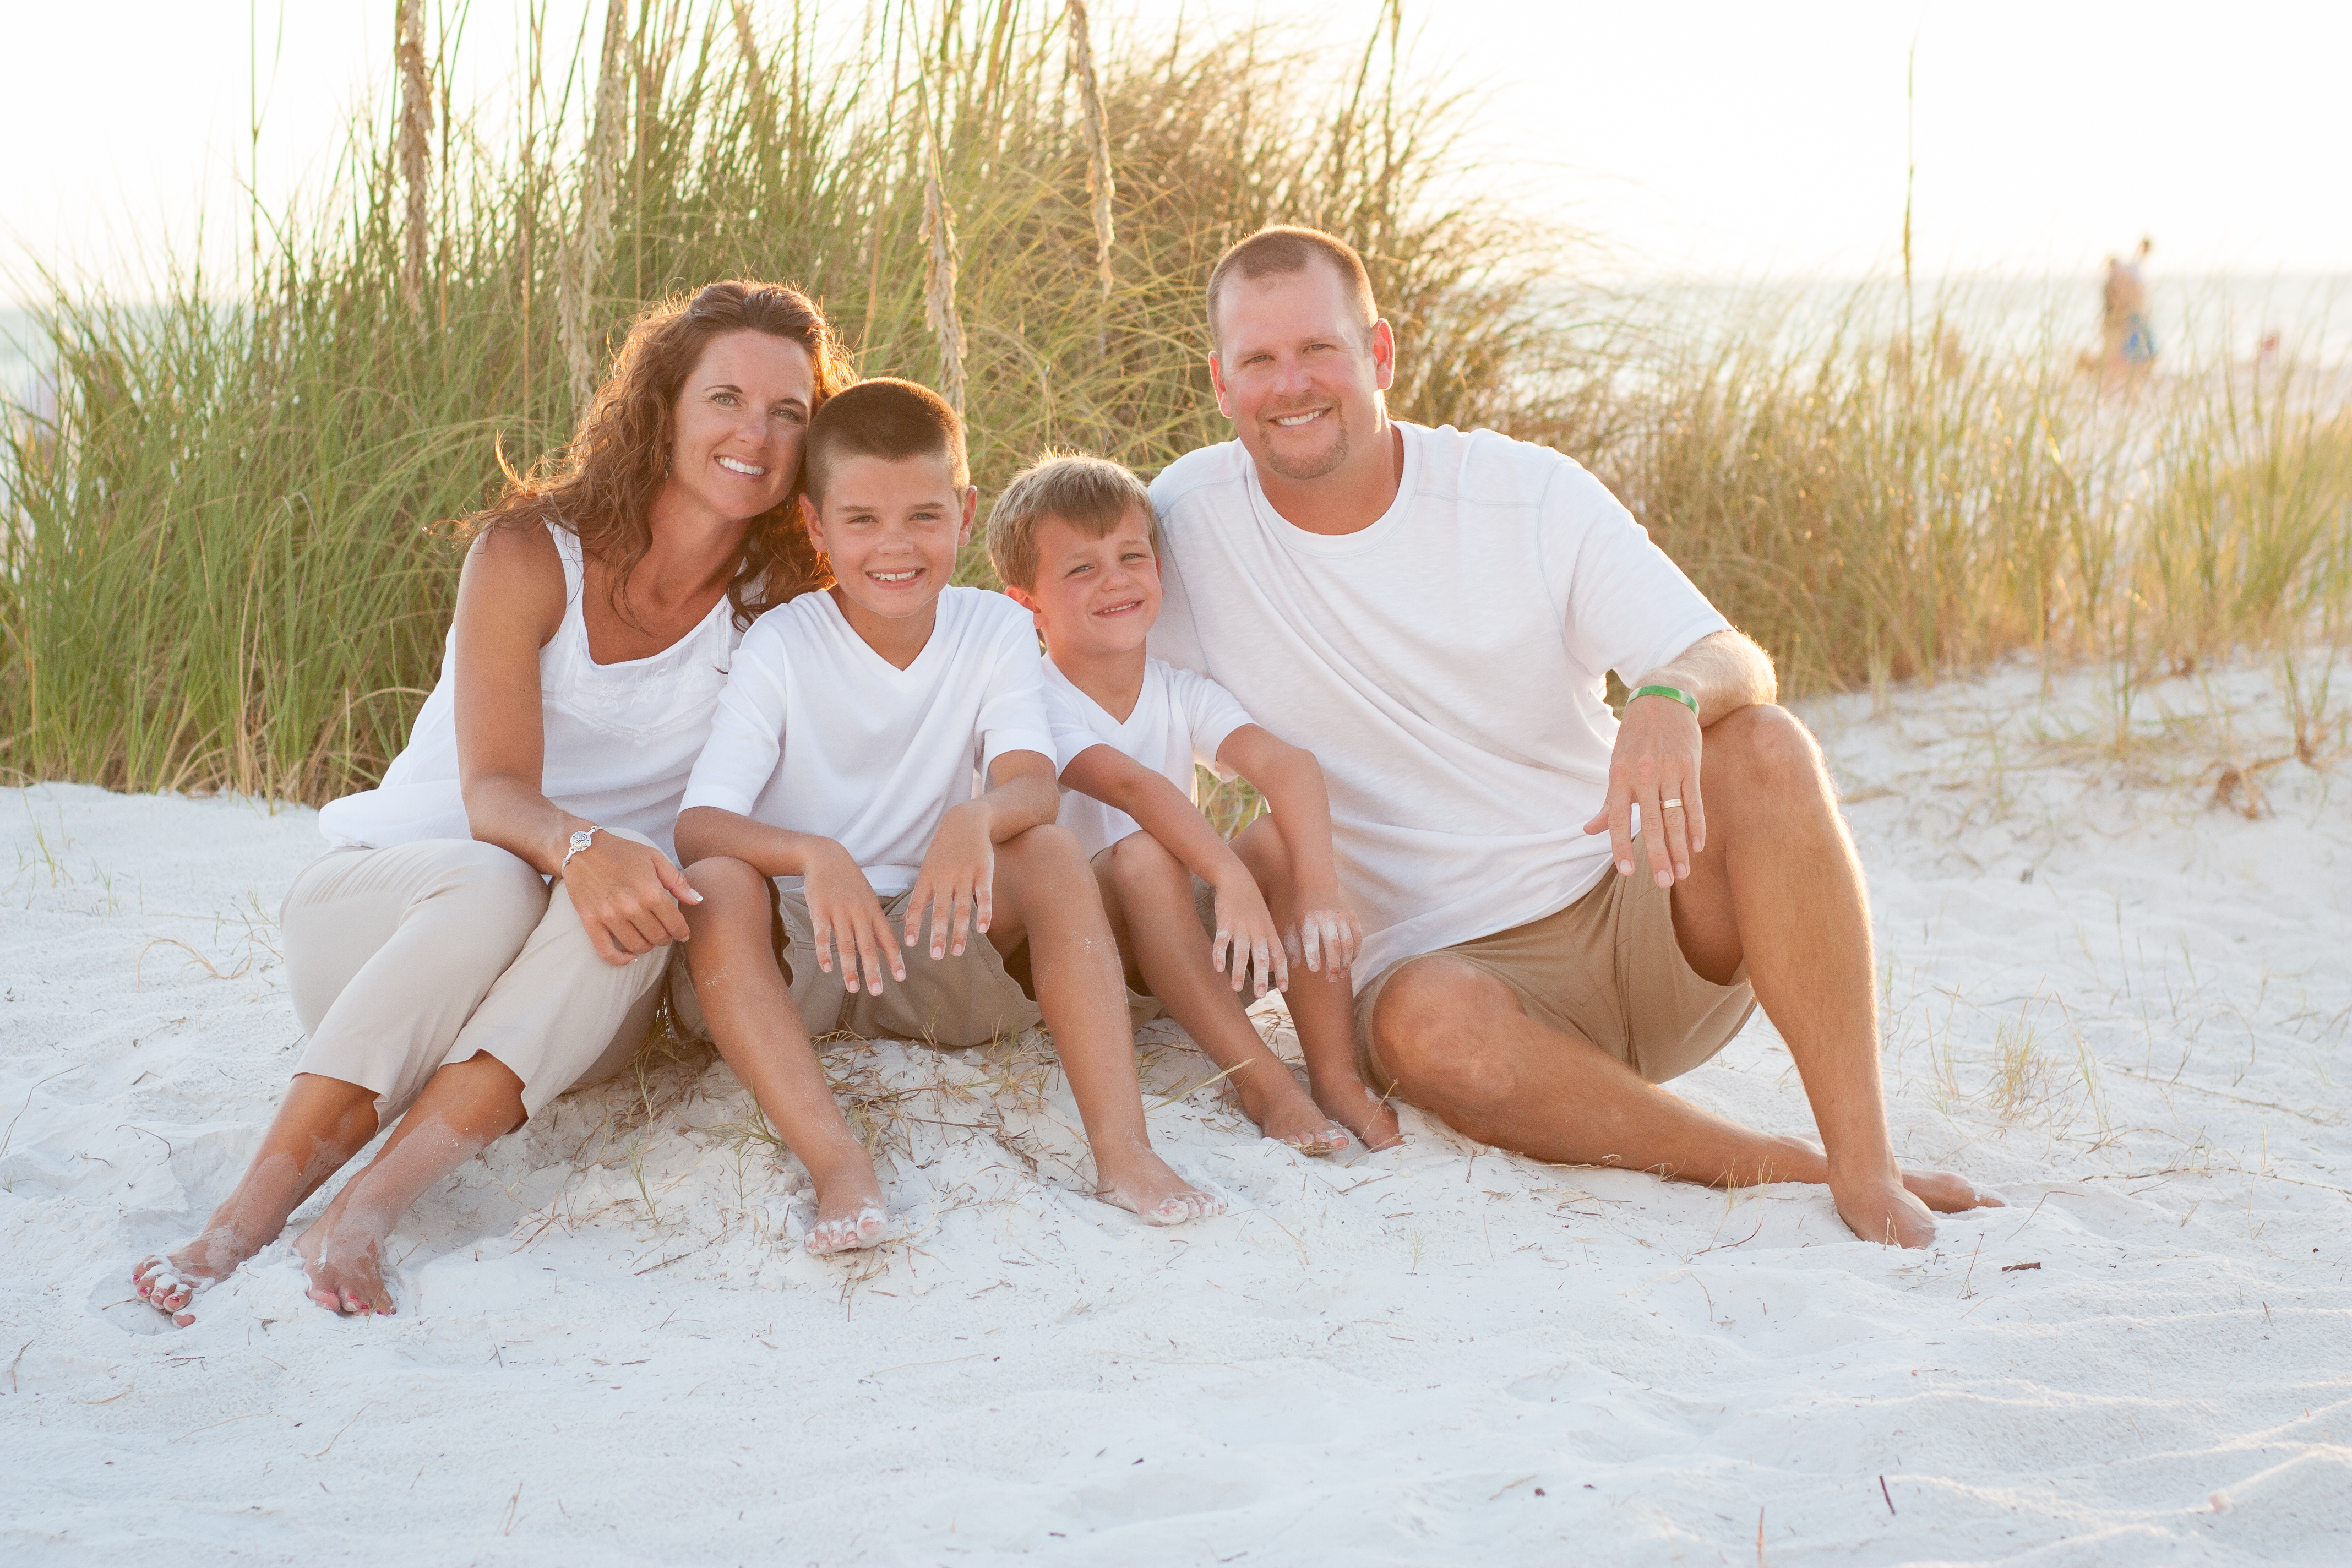 Siesta Key Beach Family Portraits with Stacey Marks Photography